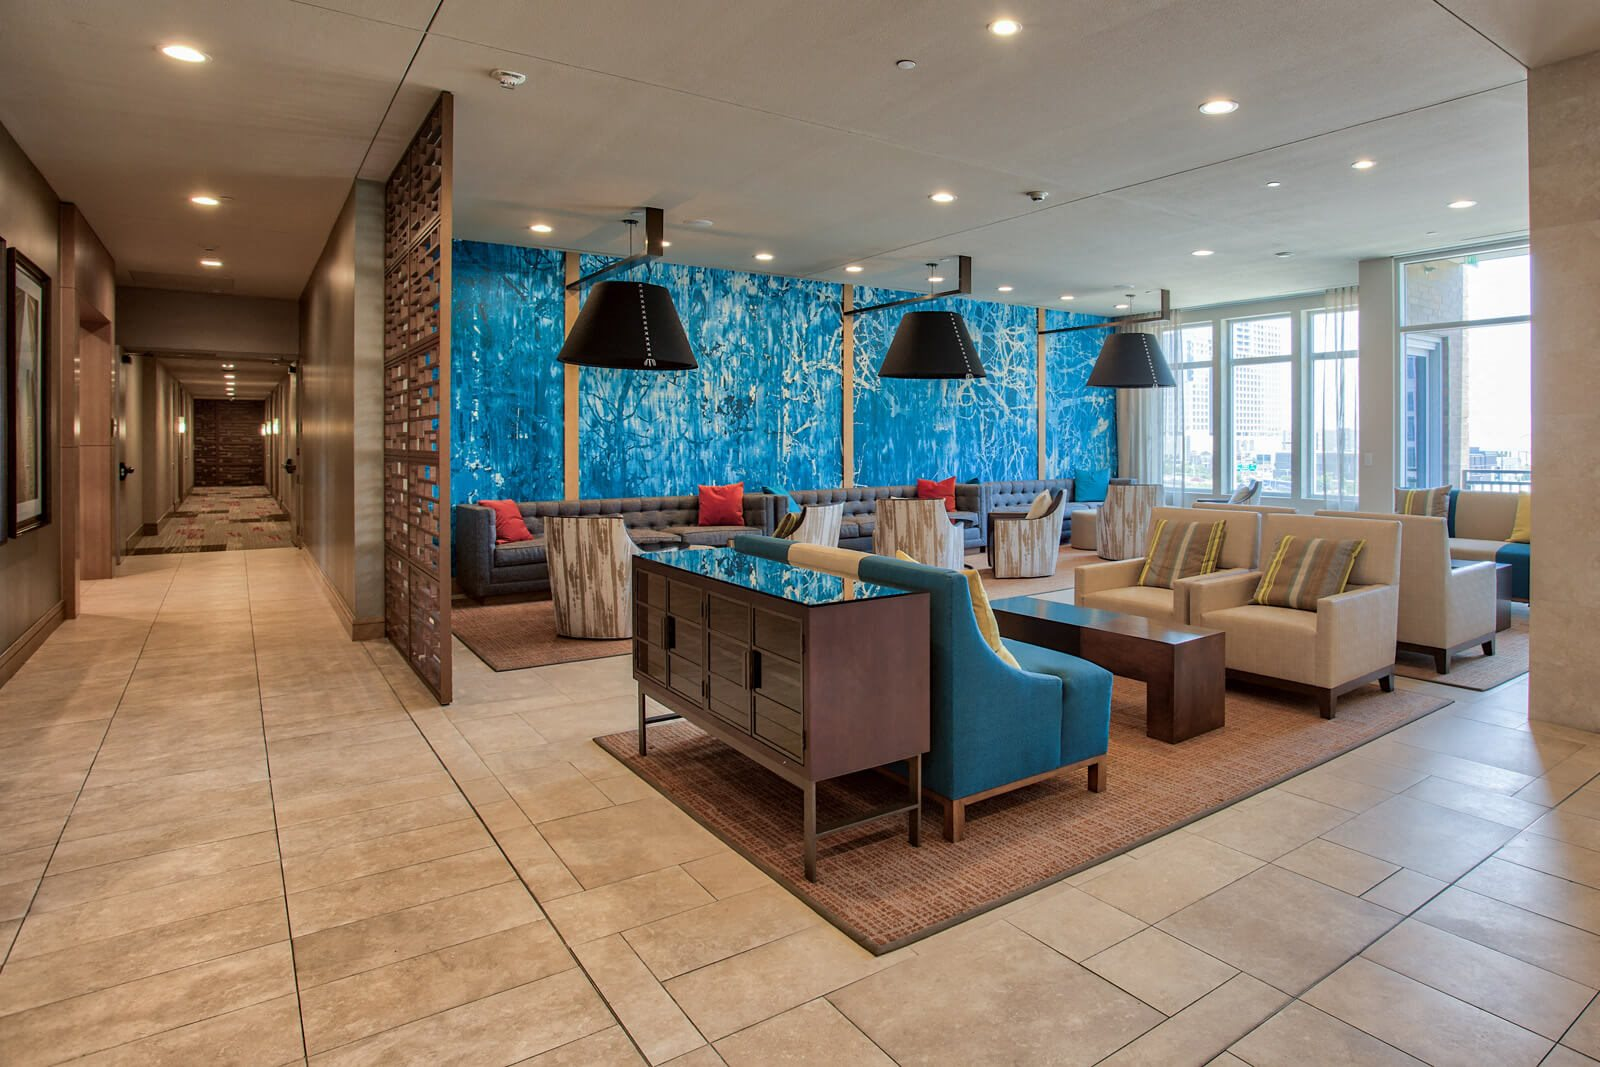 Wi-Fi in Common Areas at The Jordan by Windsor, Texas, 75201